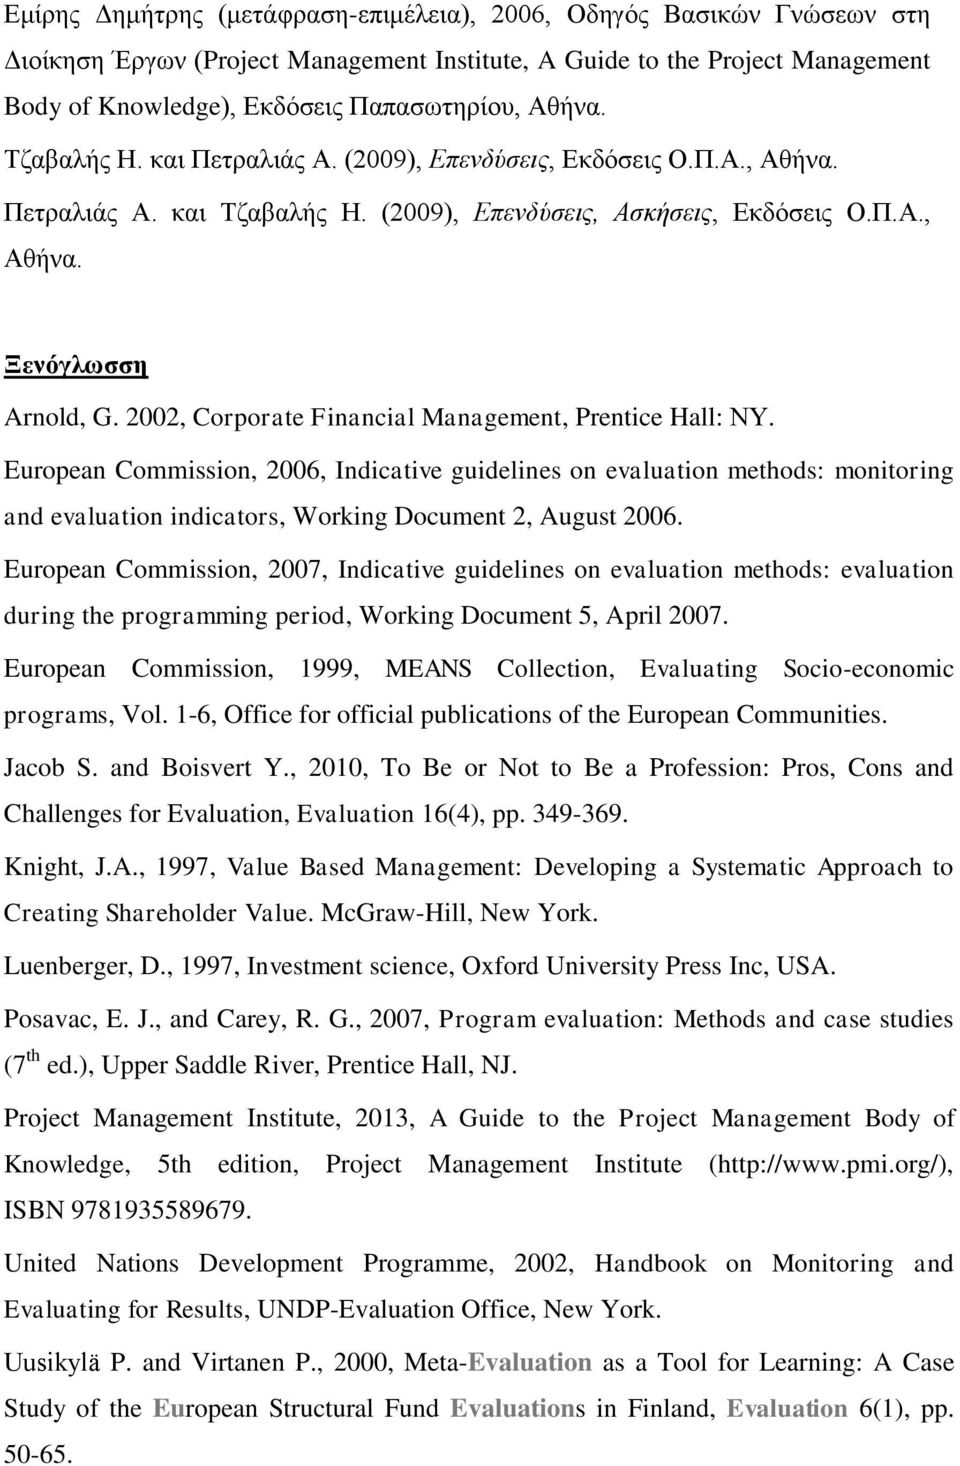 2002, Corporate Financial Management, Prentice Hall: ΝΥ. European Commission, 2006, Indicative guidelines on evaluation methods: monitoring and evaluation indicators, Working Document 2, August 2006.